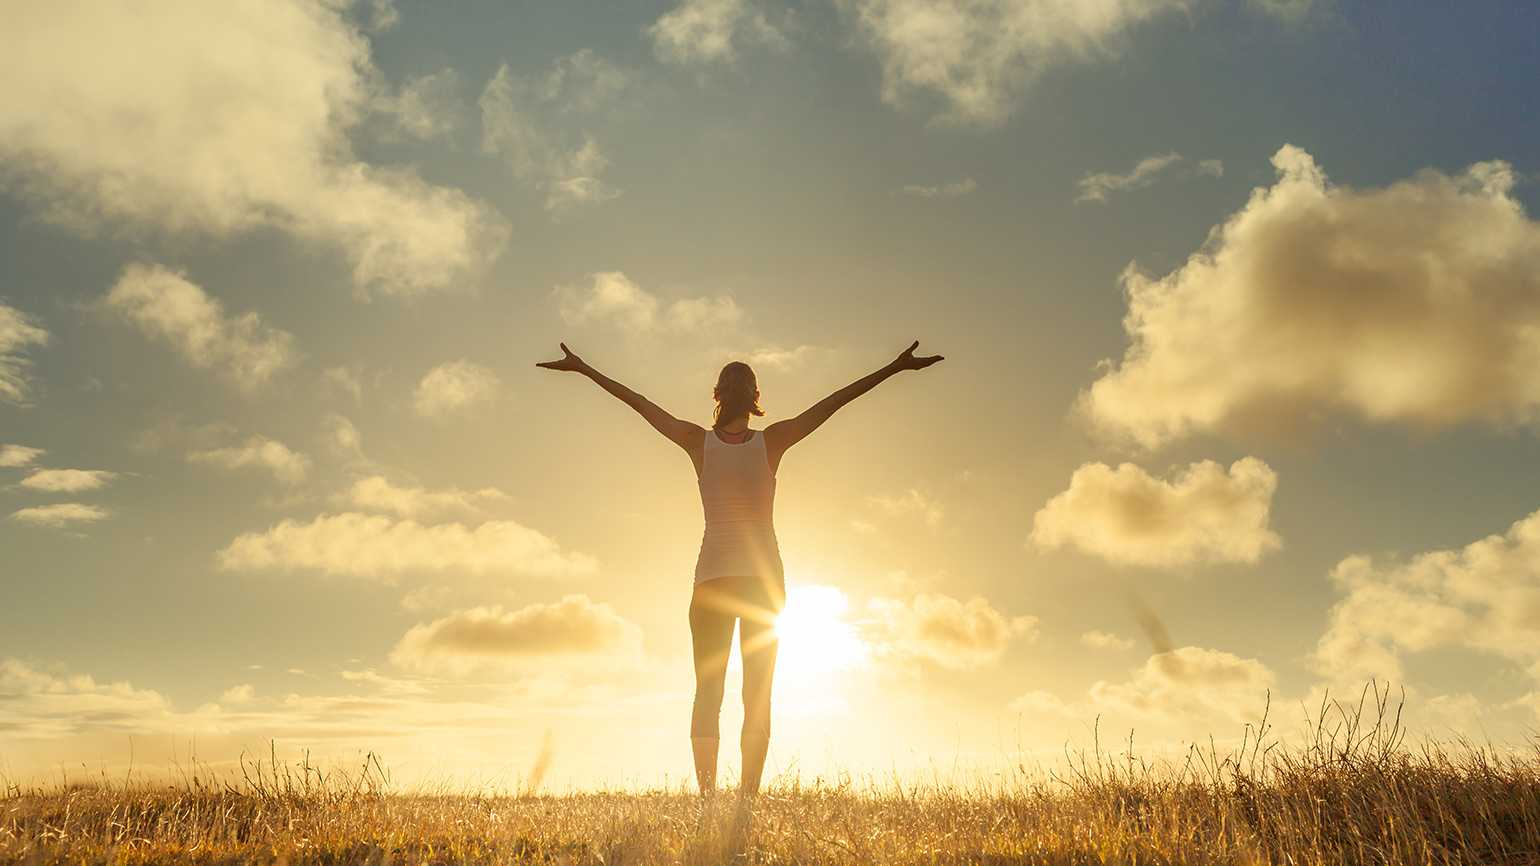 A woman soaks up the sun with her arms outstretched